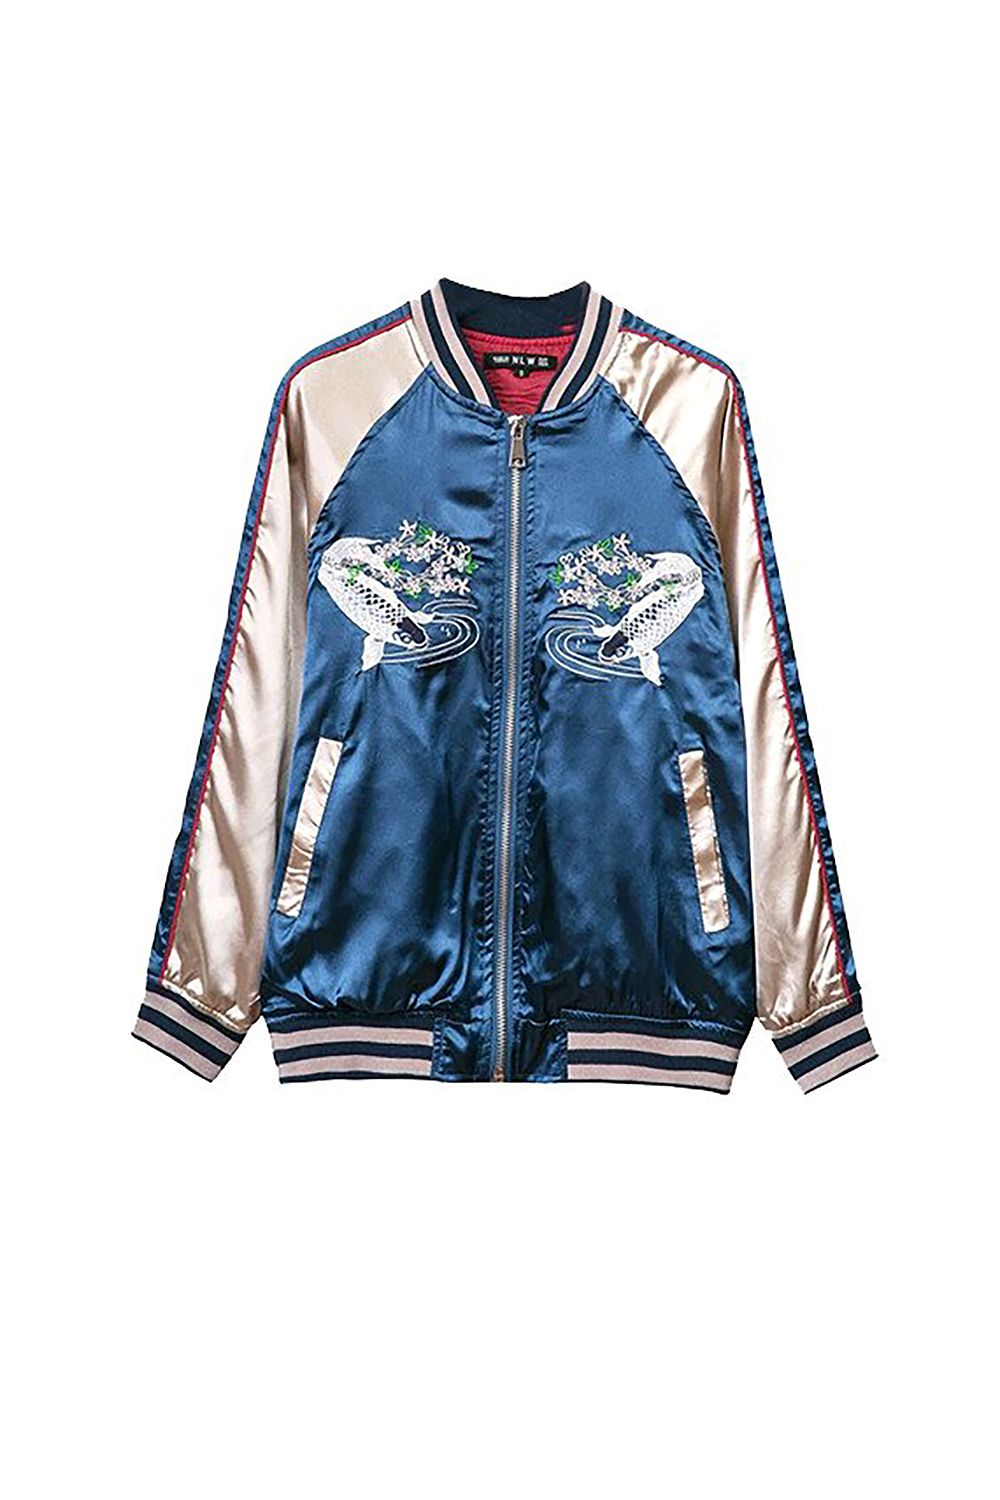 "<p>Whereas this one is so fun and Gucci (in both senses of the word), it'll also be a forever piece too. </p><p><em>$64, <a href=""http://genuine-people.com/collections/the-bomber-jacket/products/embroidered-bomber-jacket?variant=18328144133"" target=""_blank"">genuinepeople.com</a>.</em></p>"